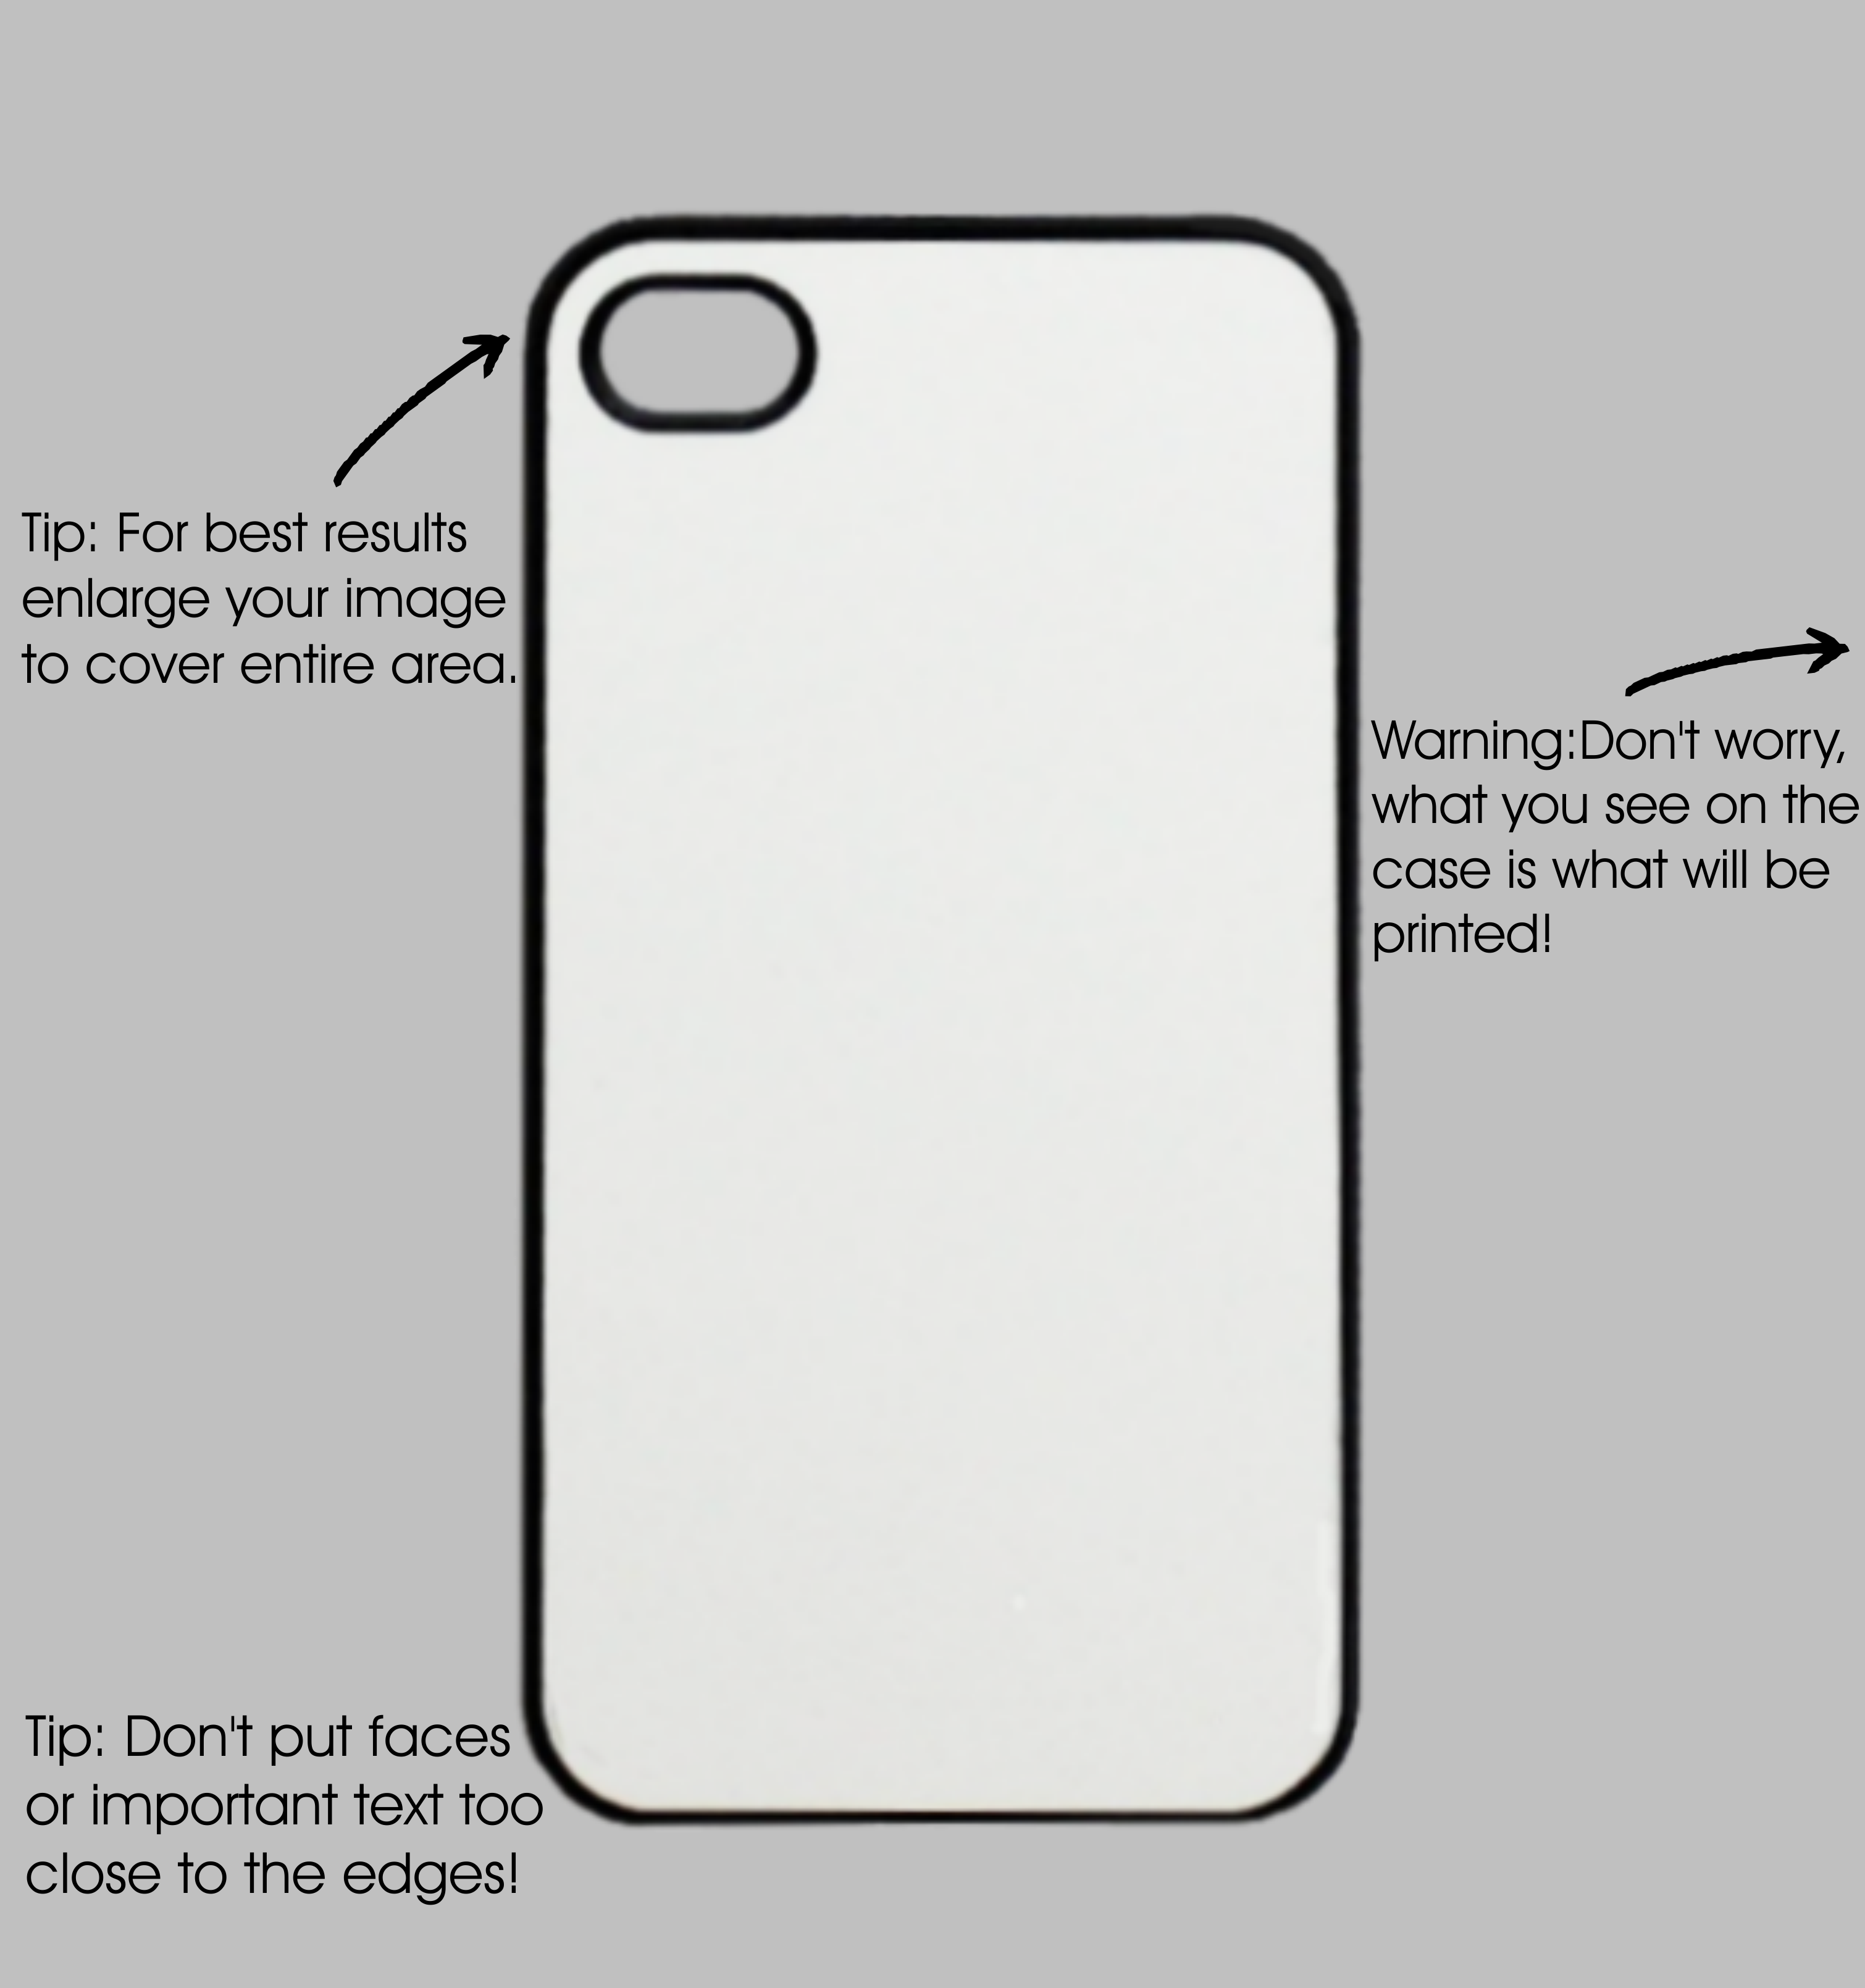 bronc halter noseband template - iphone 4s template case image collections template